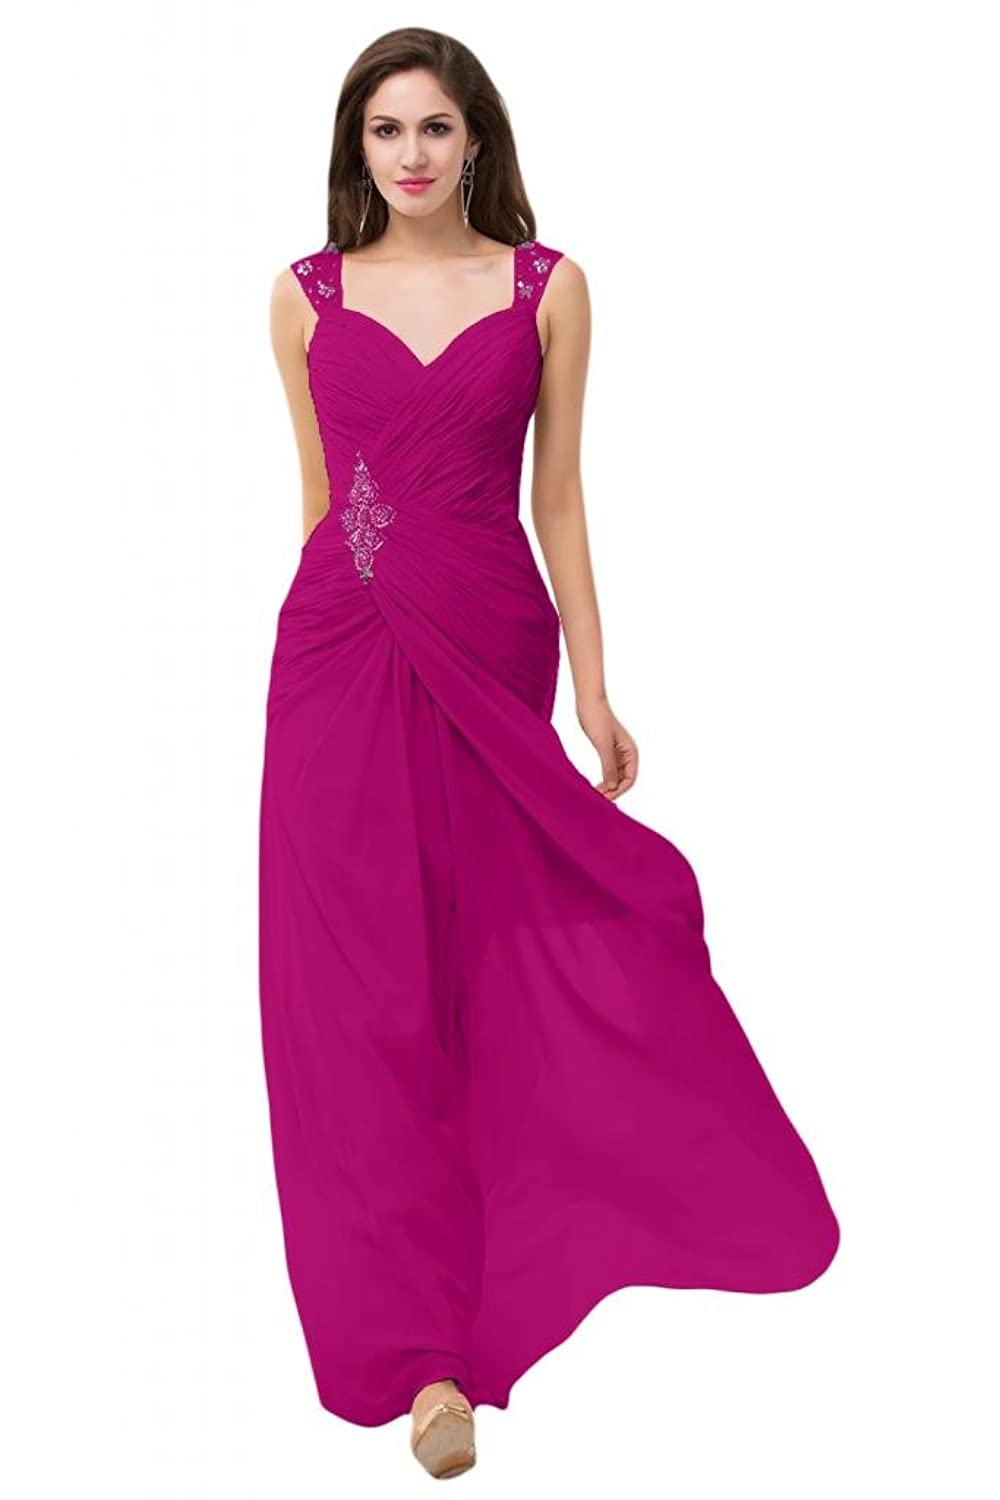 Sunvary Satin Chiffon Trailing Dresses for Bridesmaid Pageant Special Occasions